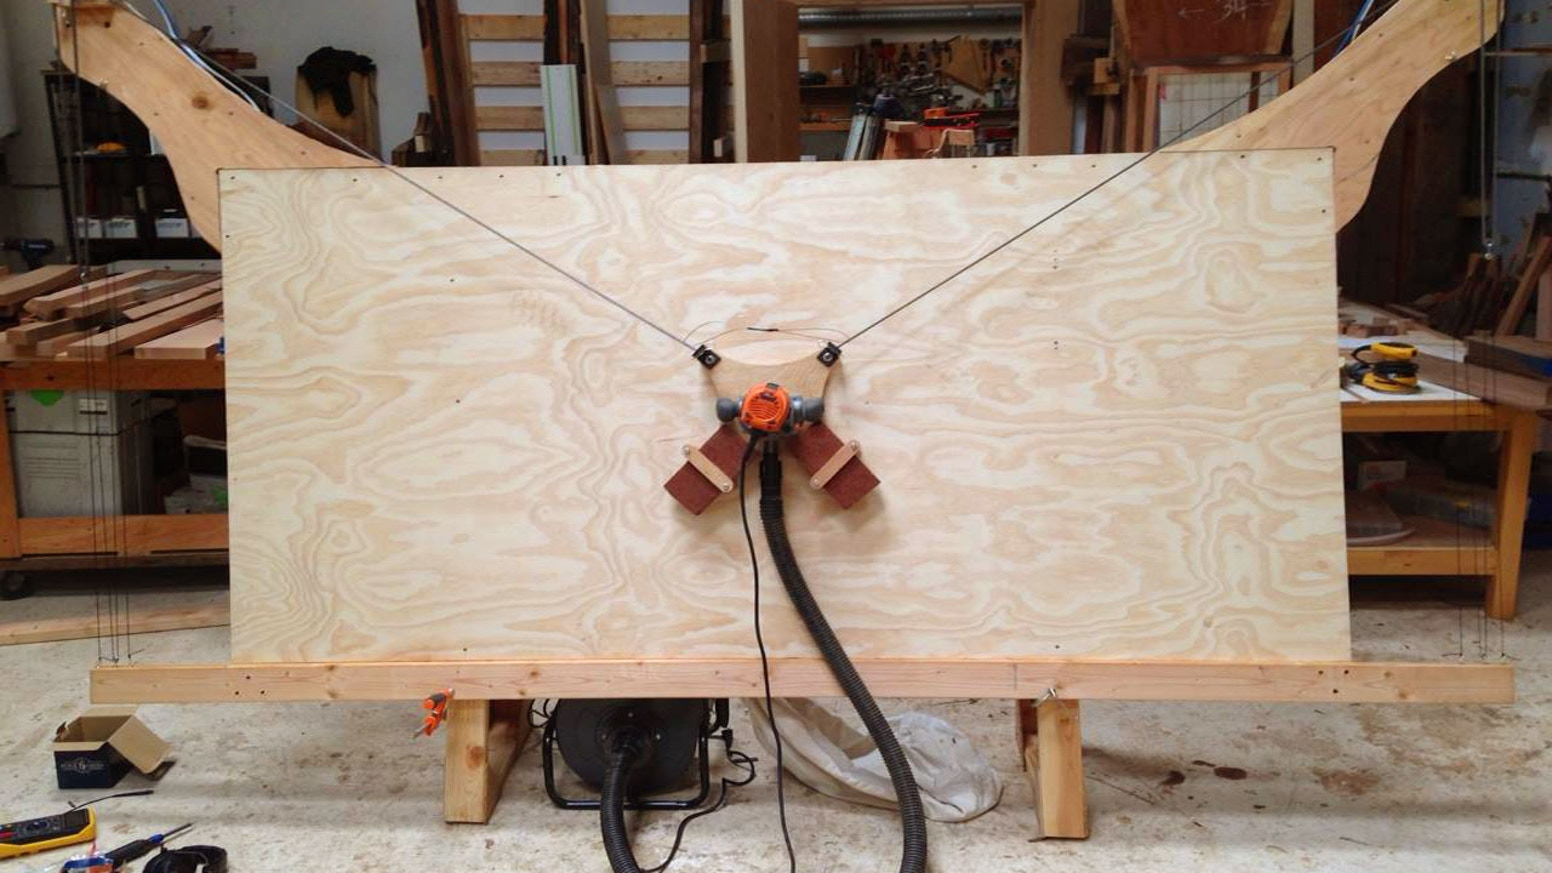 Maslow Cnc A 500 Open Source 4 By 8 Foot Cnc Machine By Bar Smith